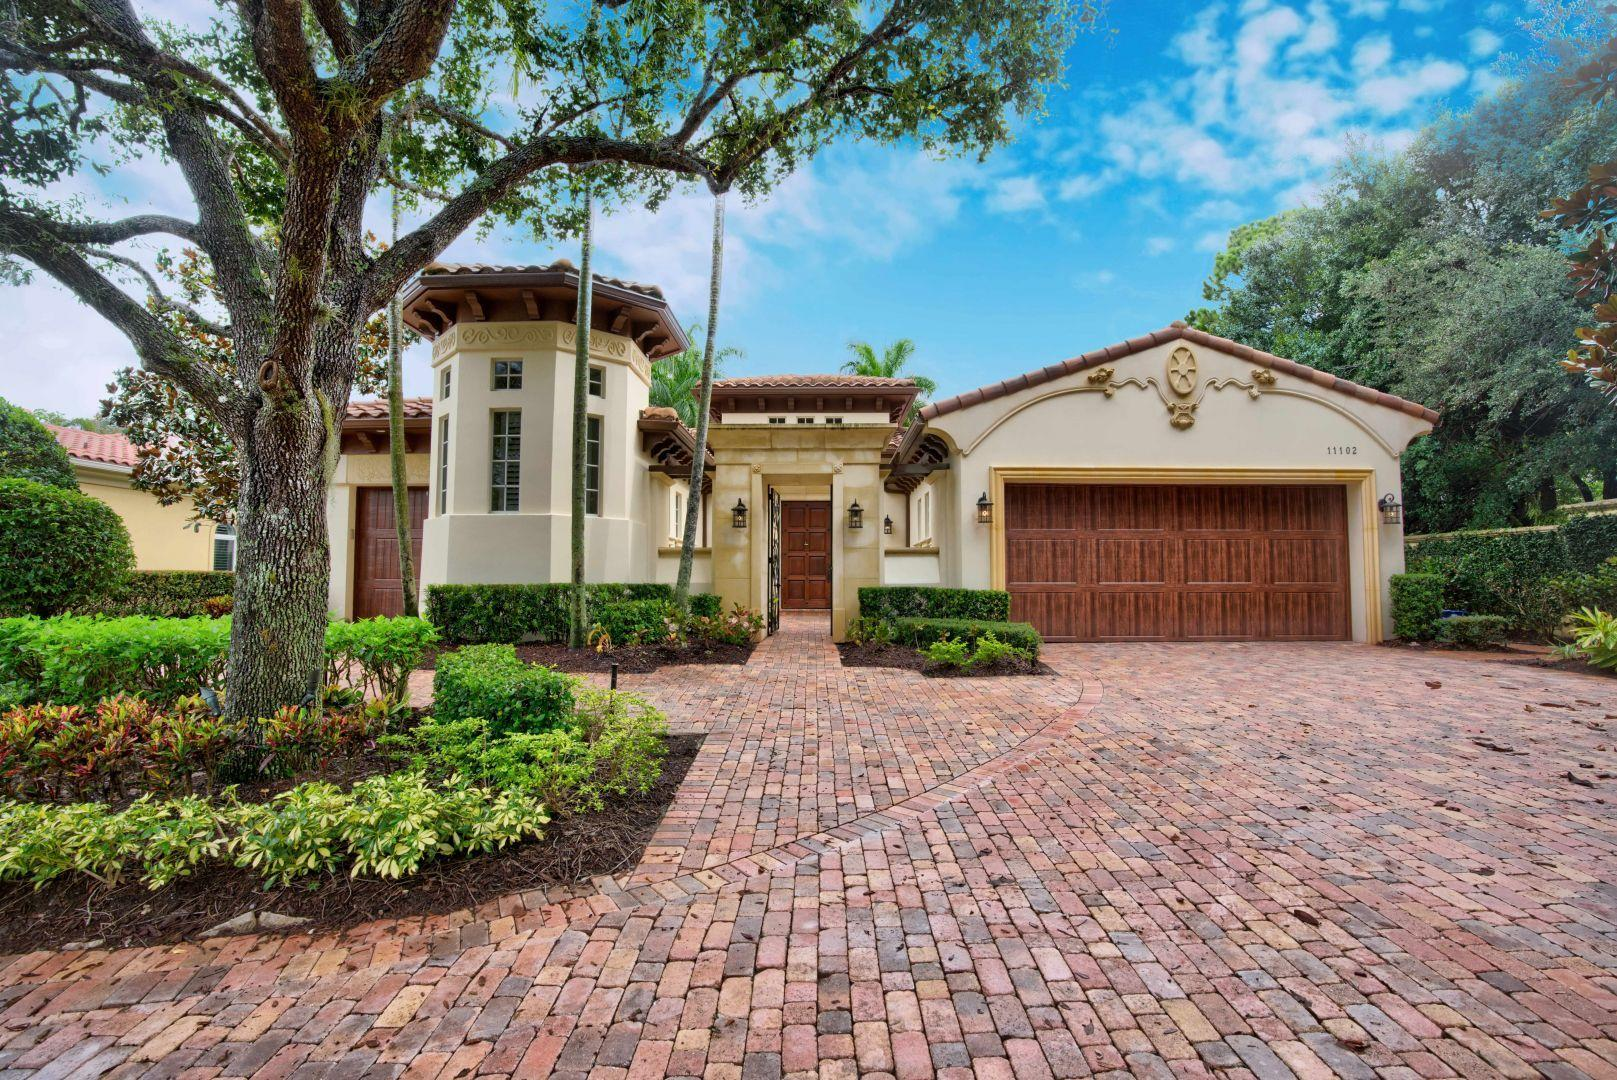 11102 Green Bayberry Drive, Palm Beach Gardens, Florida 33418, 3 Bedrooms Bedrooms, ,3.2 BathroomsBathrooms,A,Single family,Green Bayberry,RX-10628096